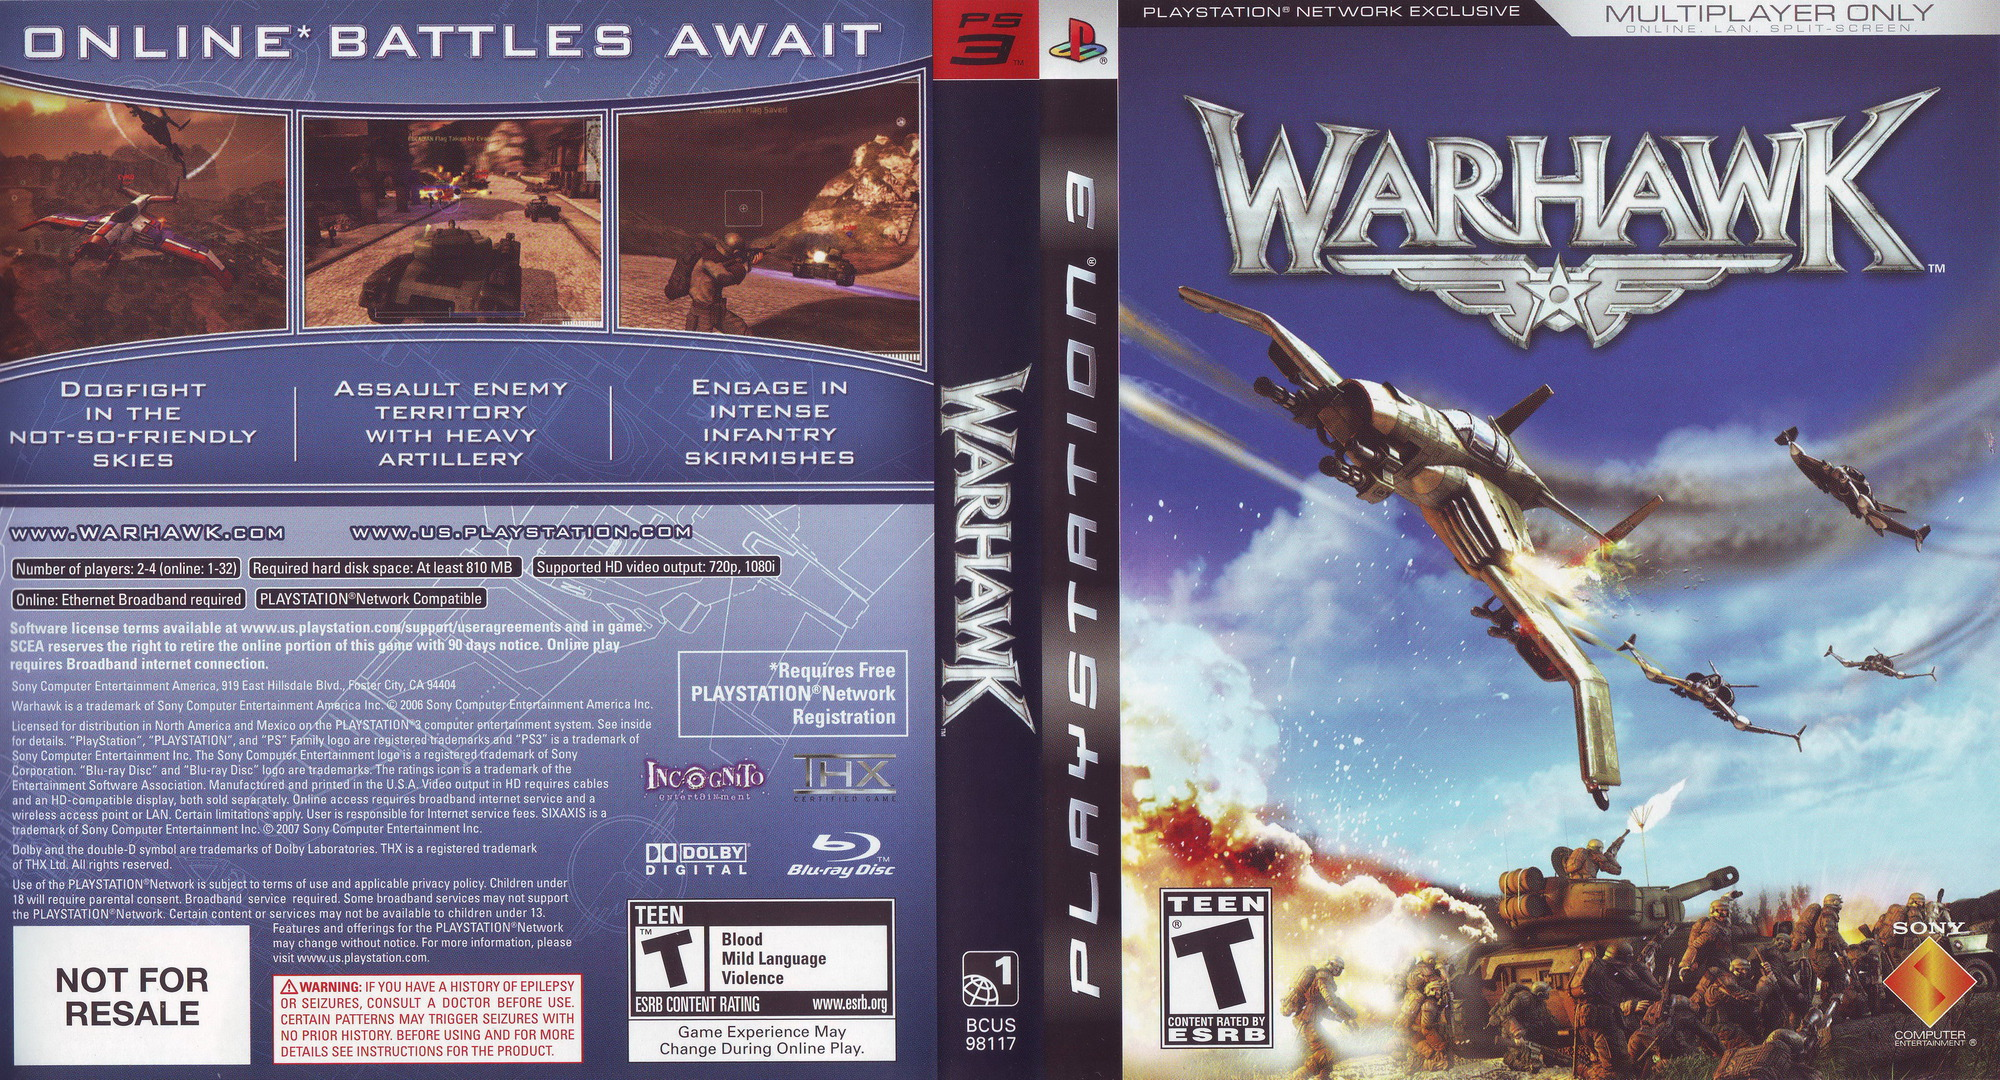 Warhawk (With Headset) PS3 coverfullHQ (BCUS98117)